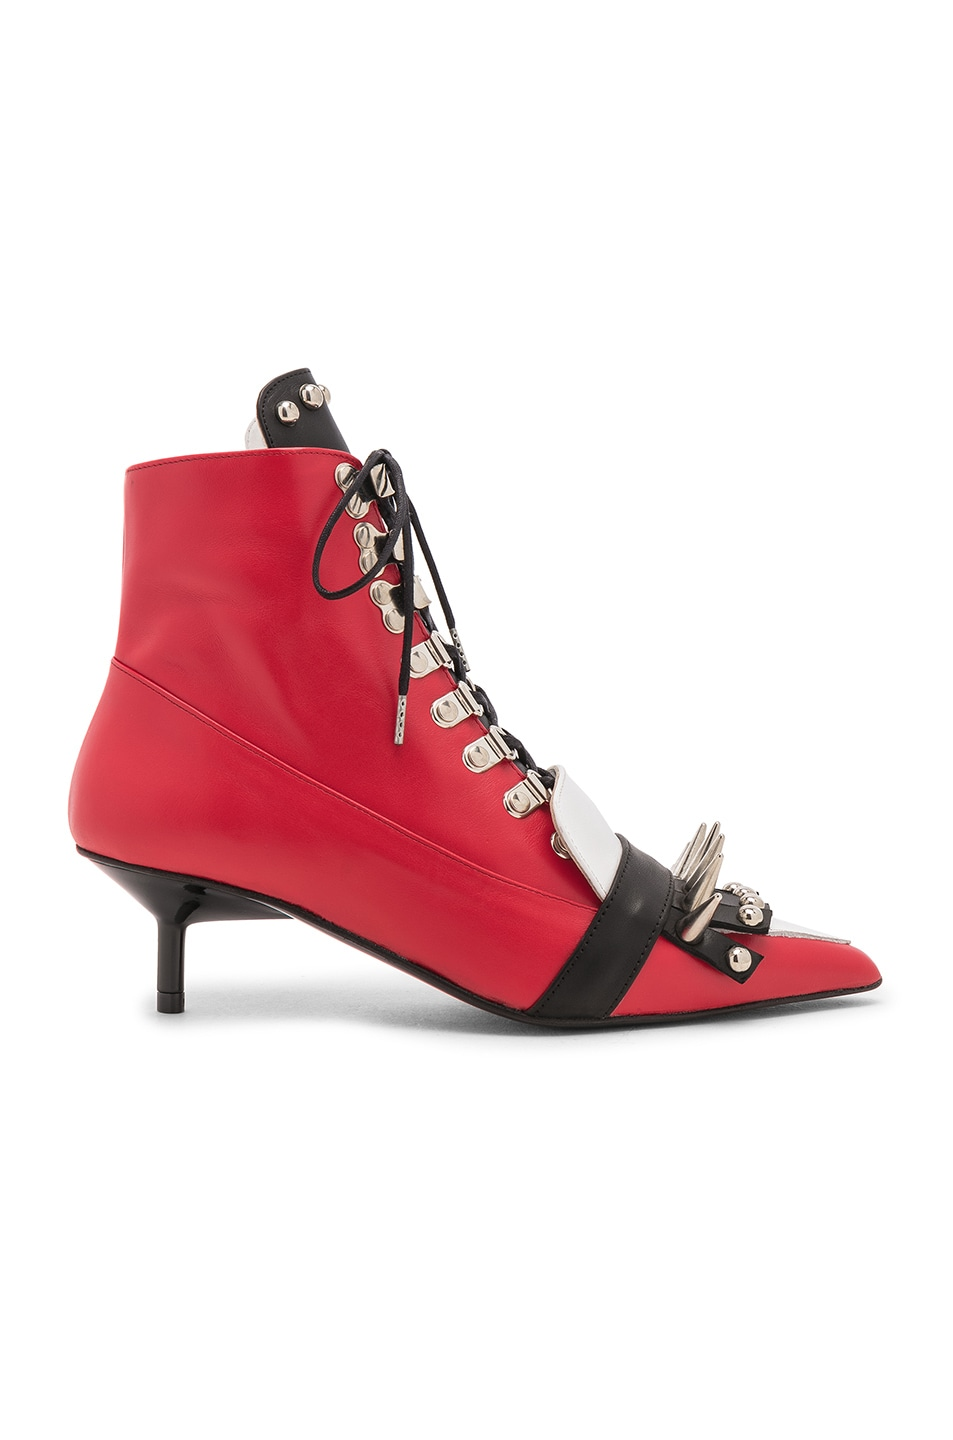 Image 1 of Marques ' Almeida Fitted Spiked Boot in Red & White